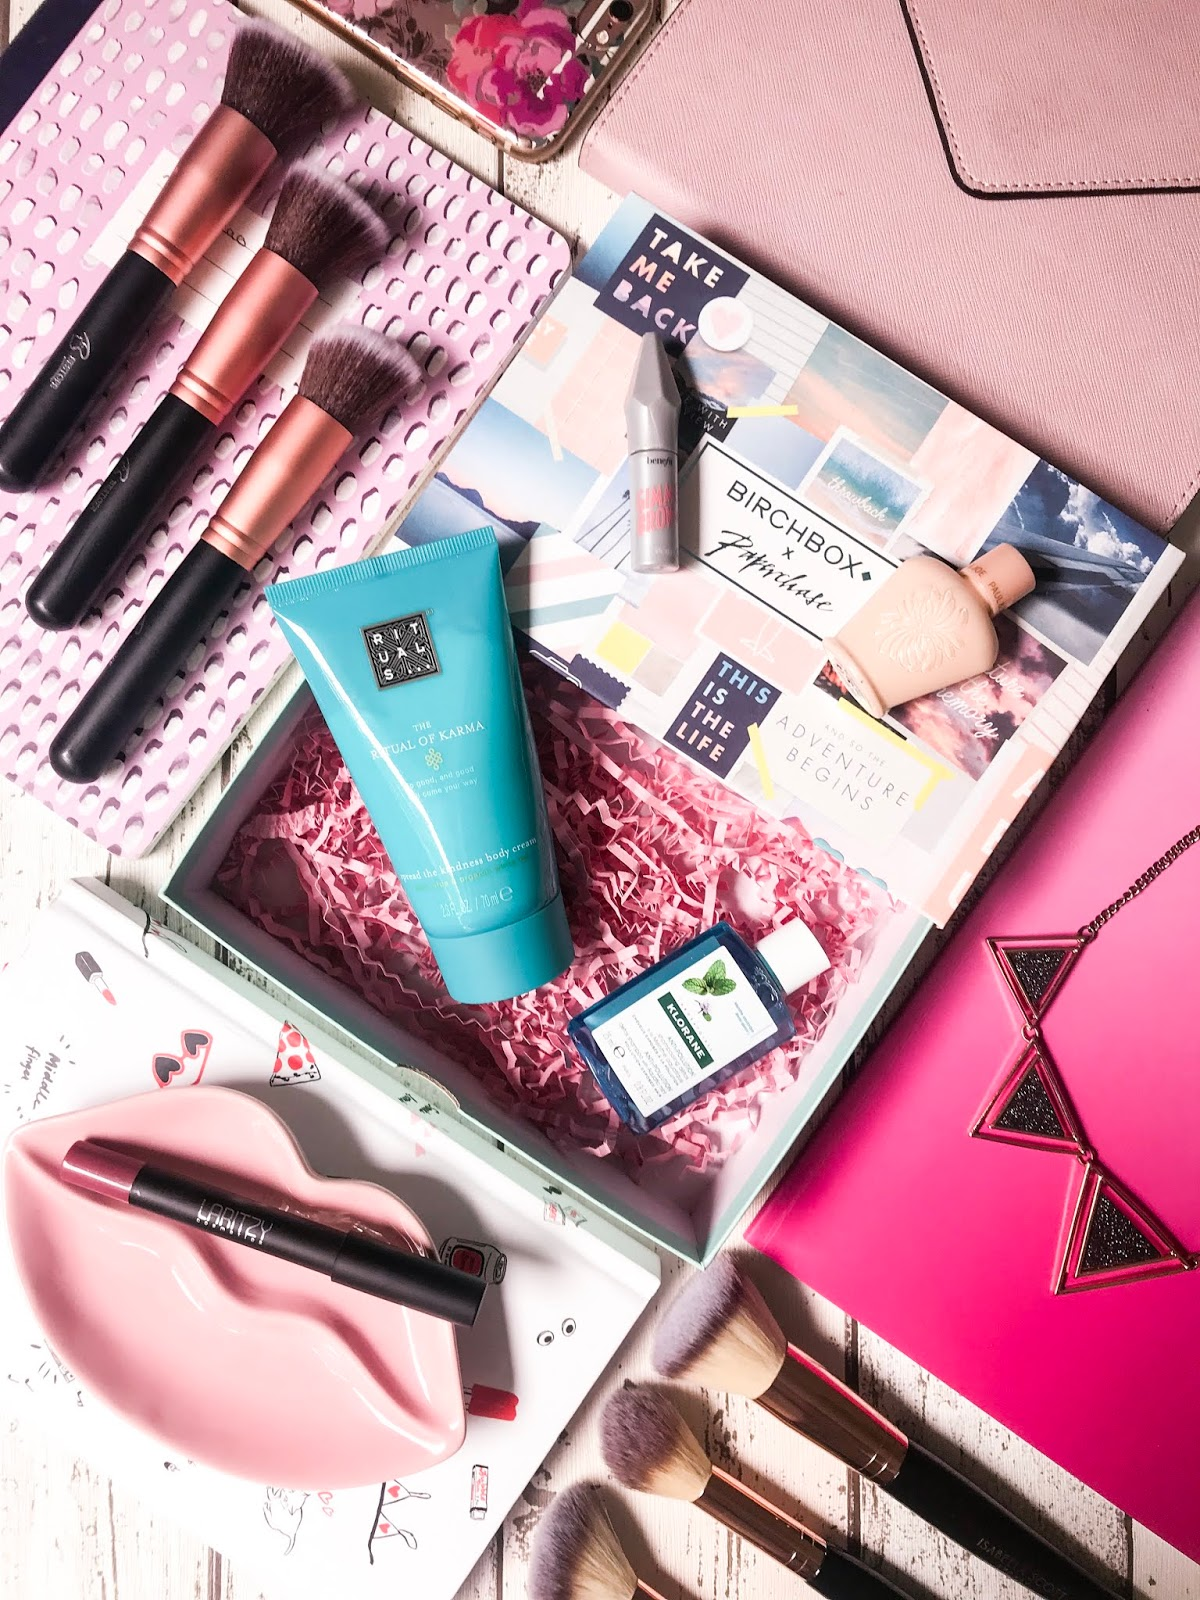 june birchbox flatlay with notebooks, makeup brushes and beauty products